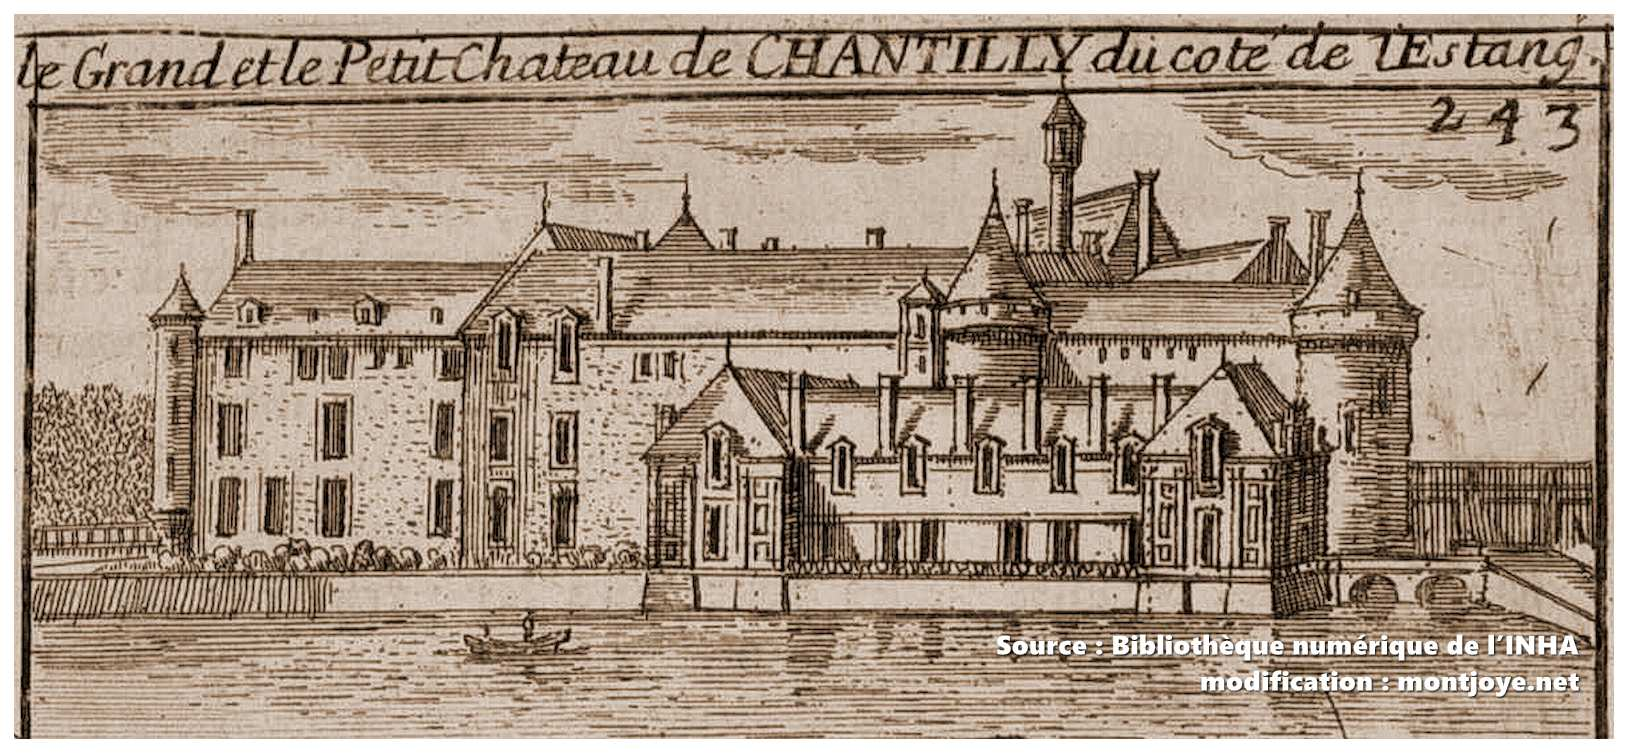 Château de Chantilly avant sa reconstruction au XIXe